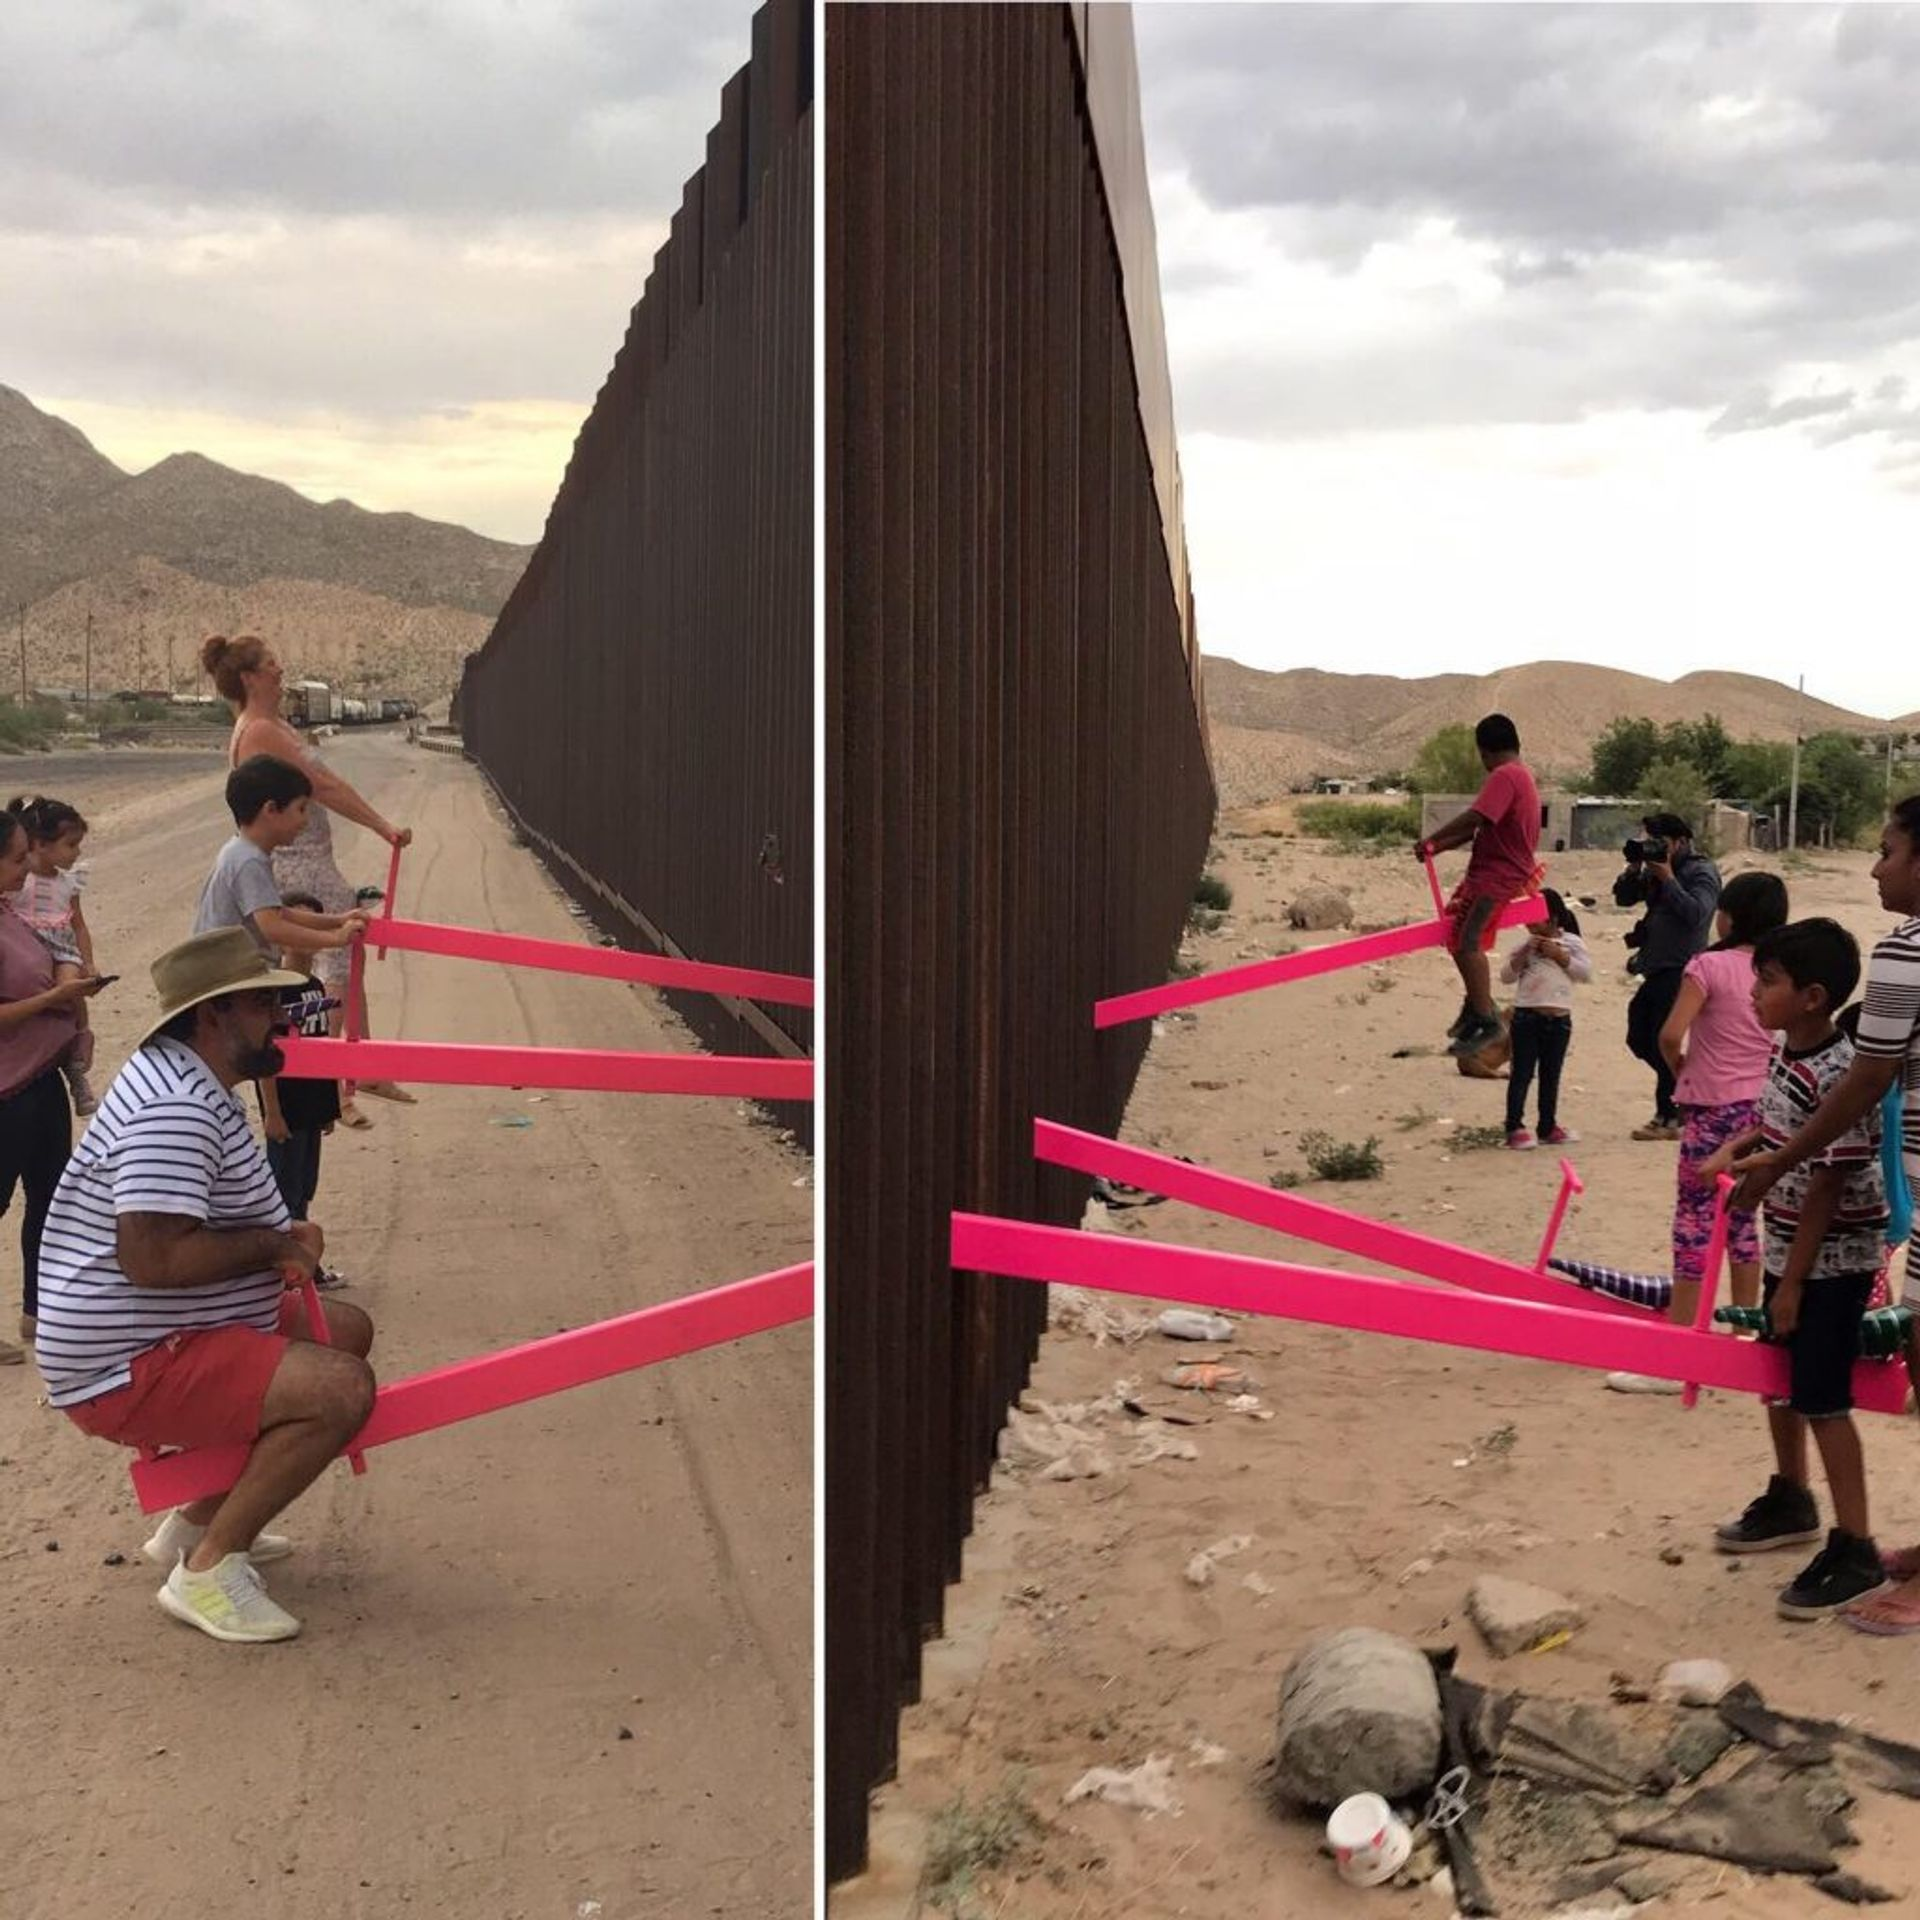 Ronald Rael and Virginia San Fratello's seesaw installation was unveiled yesterday Courtesy of the artists and University of California Press